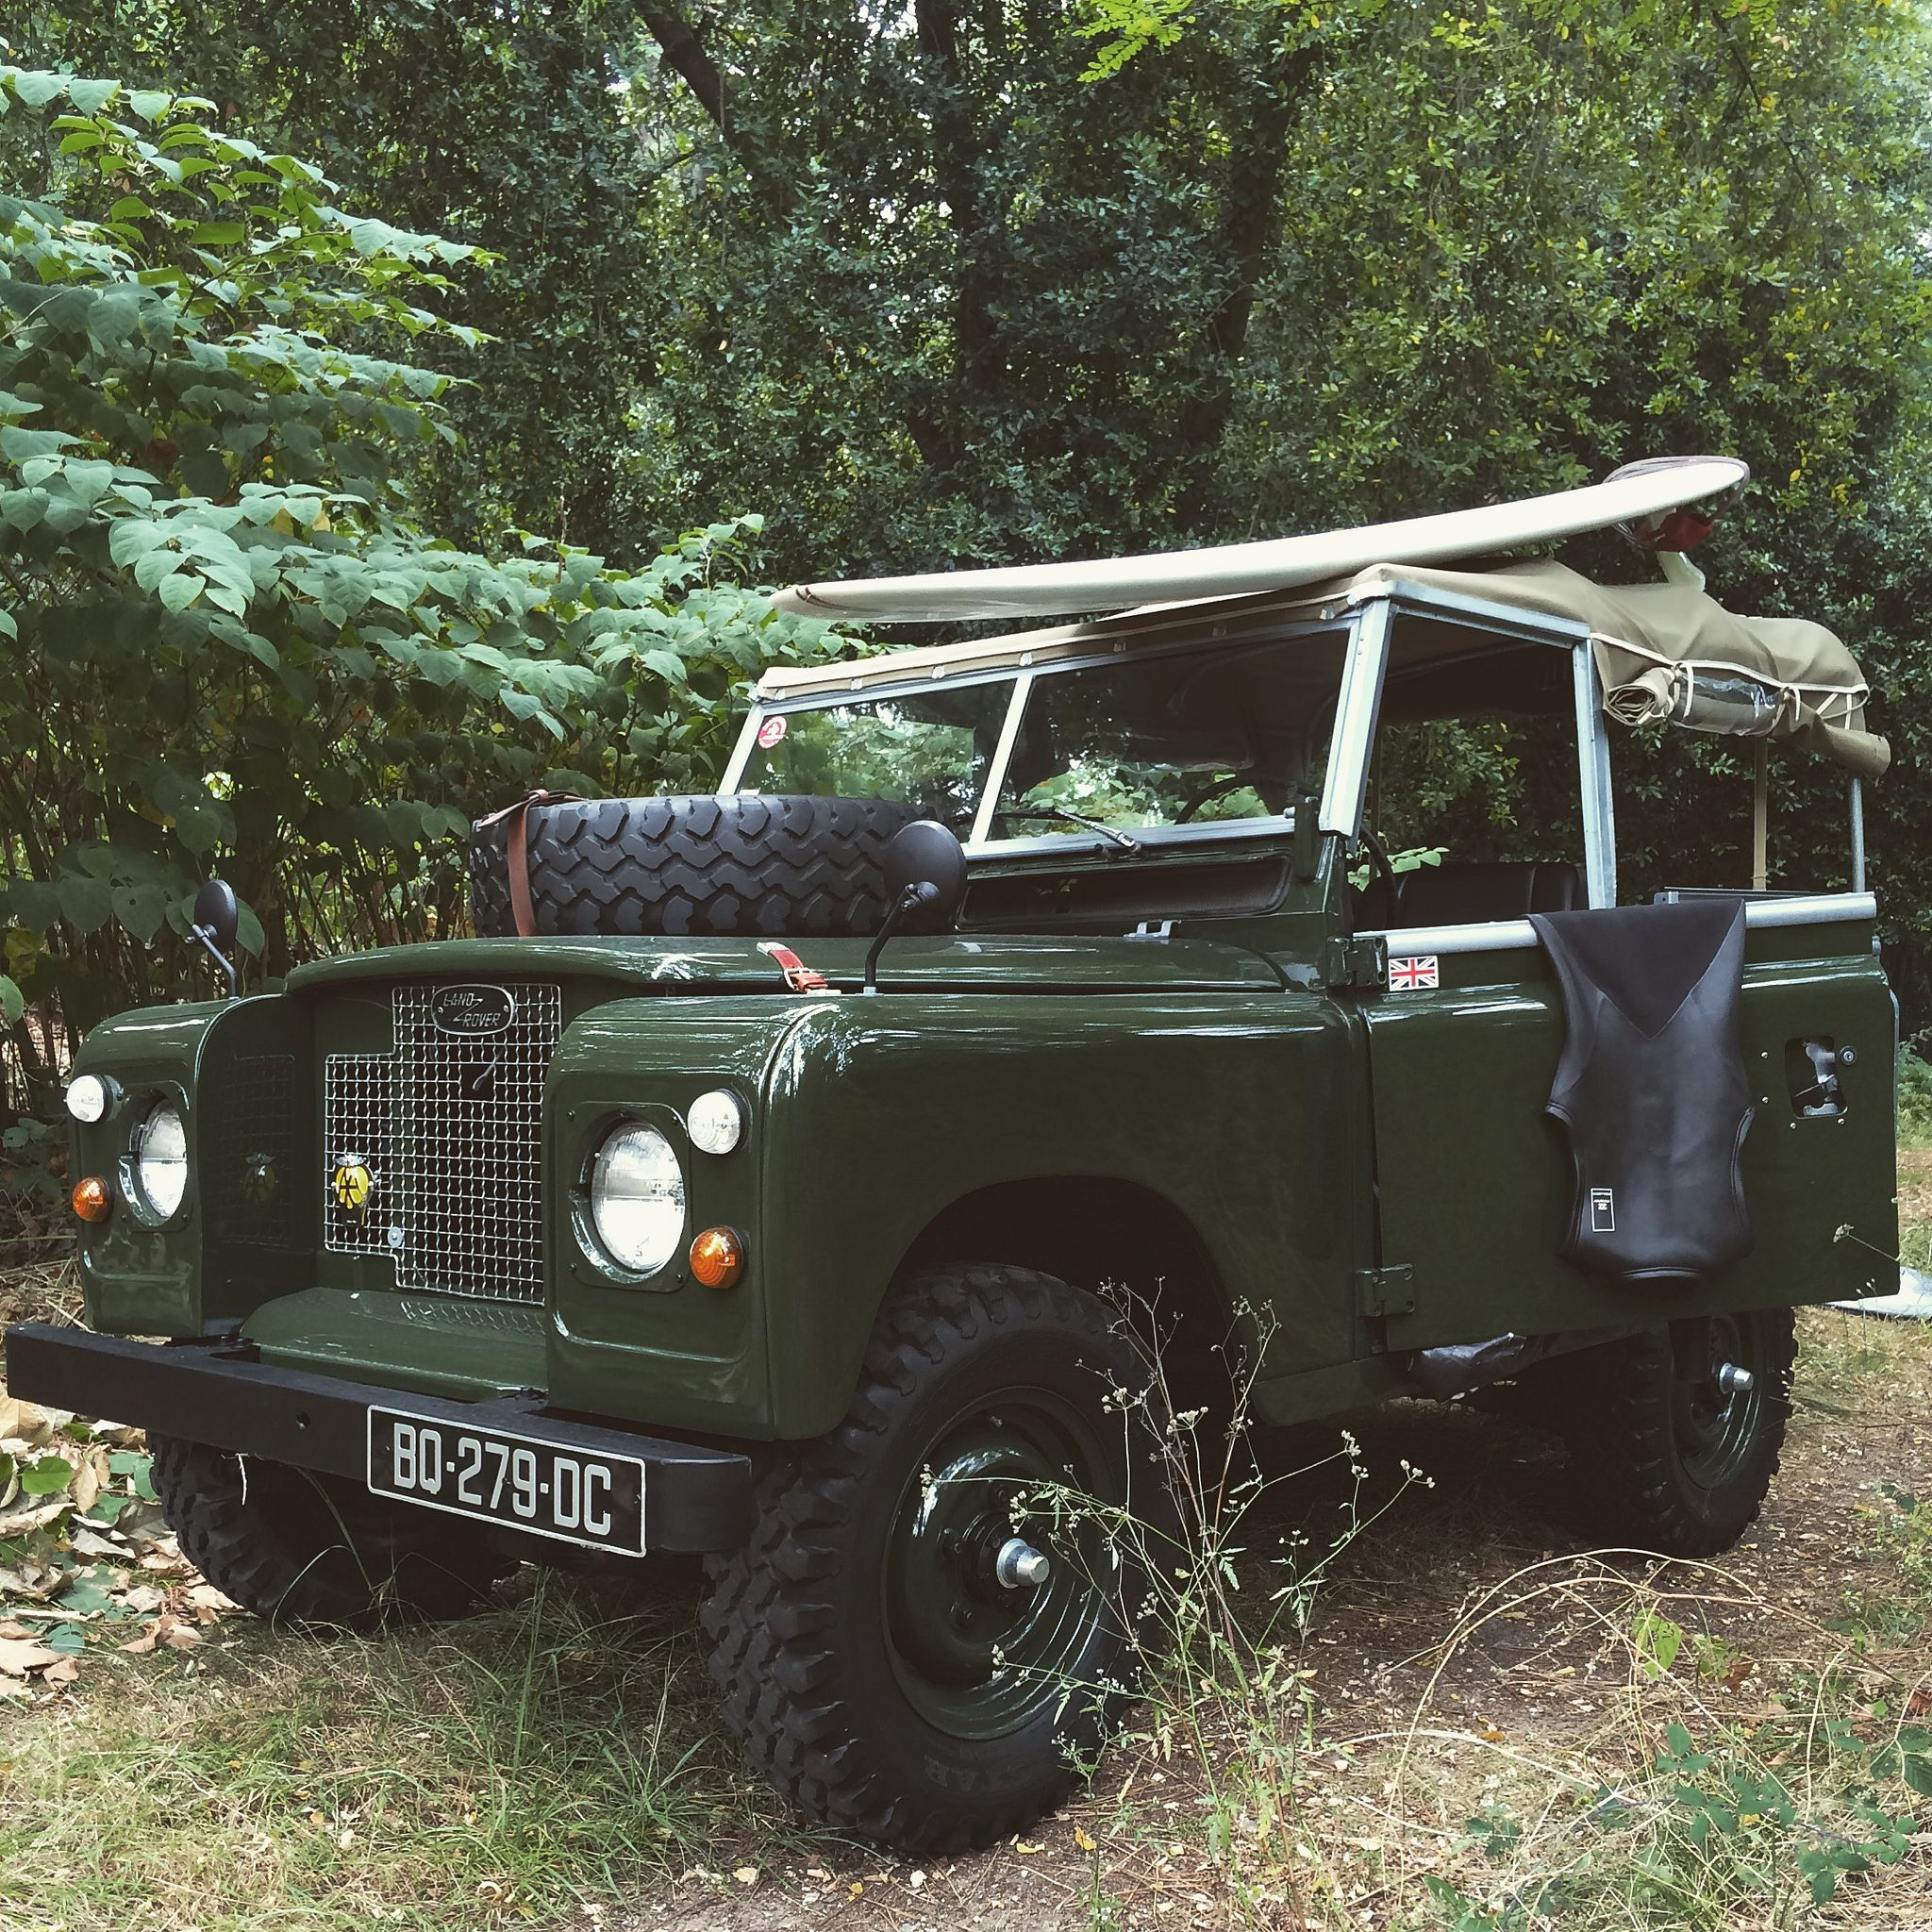 zhang ferris big land survival rover military army landrover defender parts range pin lei pinterest rovers perentie by on online wheel trail